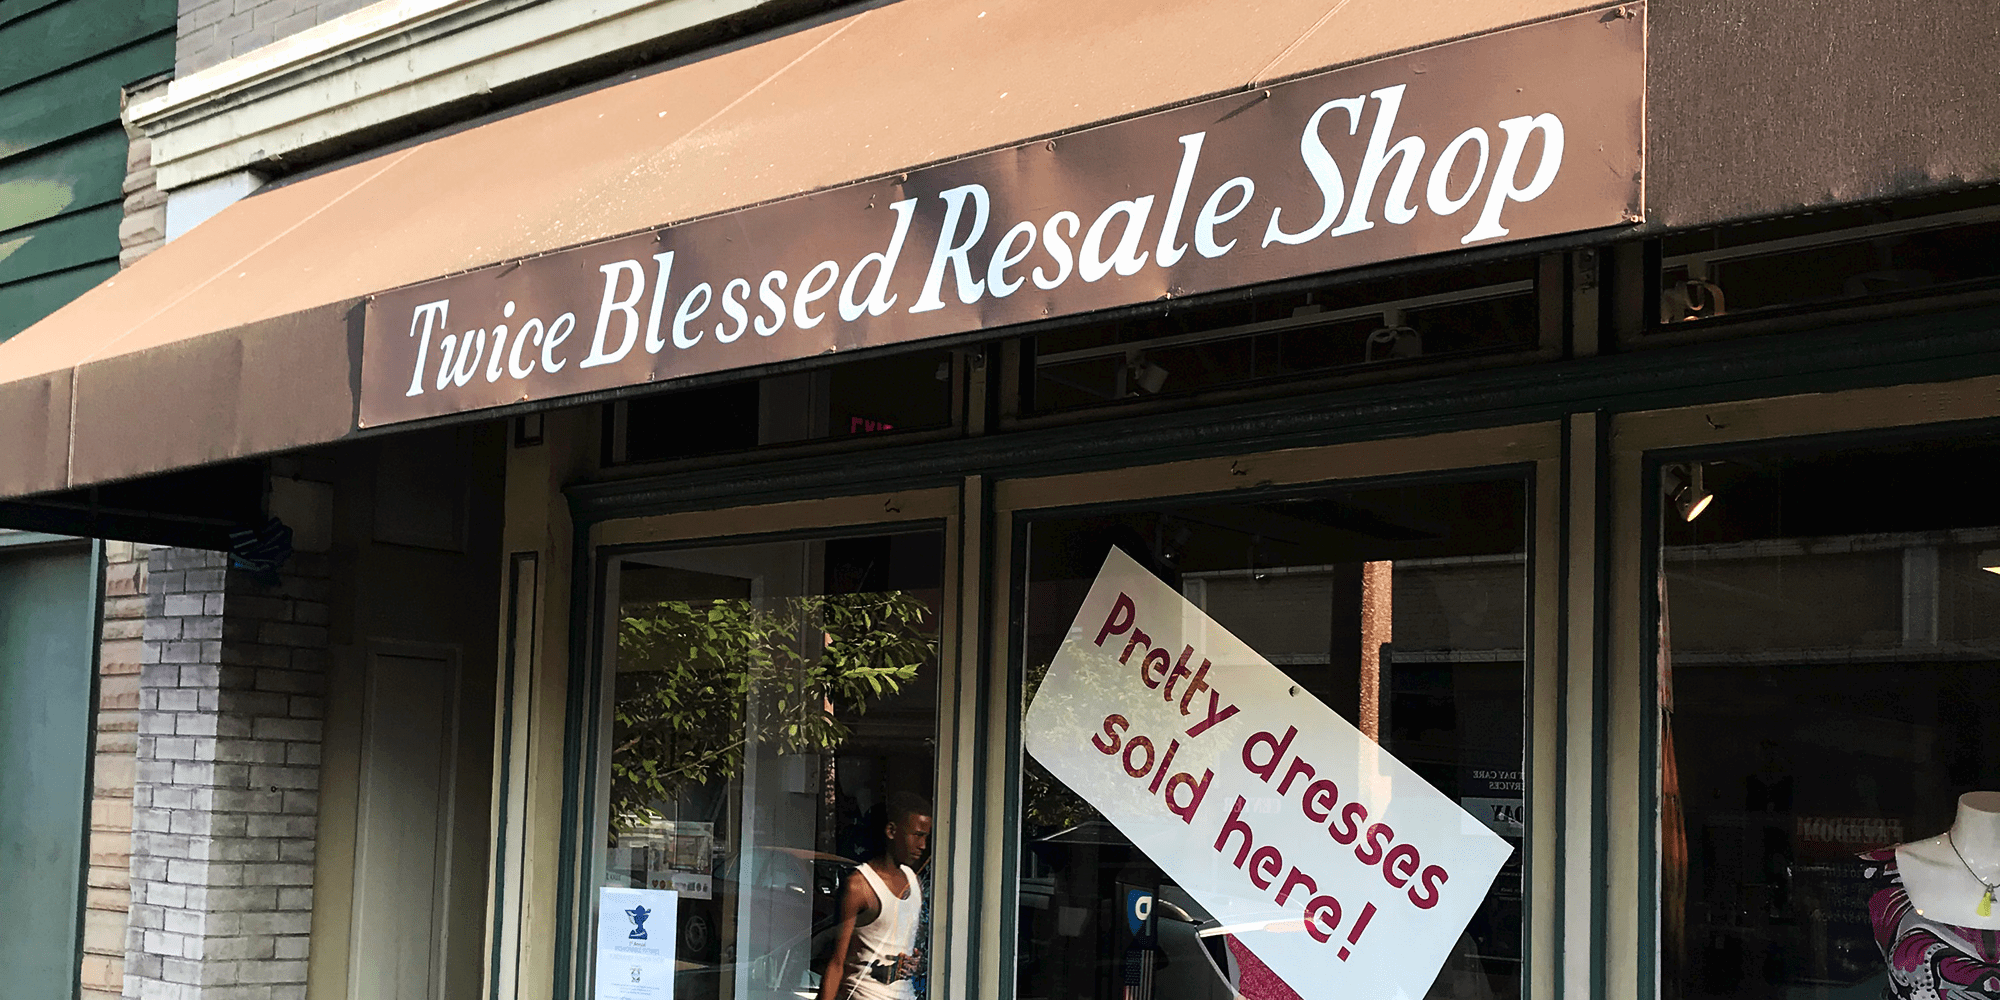 Twice Blessed Resale Shop on Meramec Street in Downtown Dutchtown.